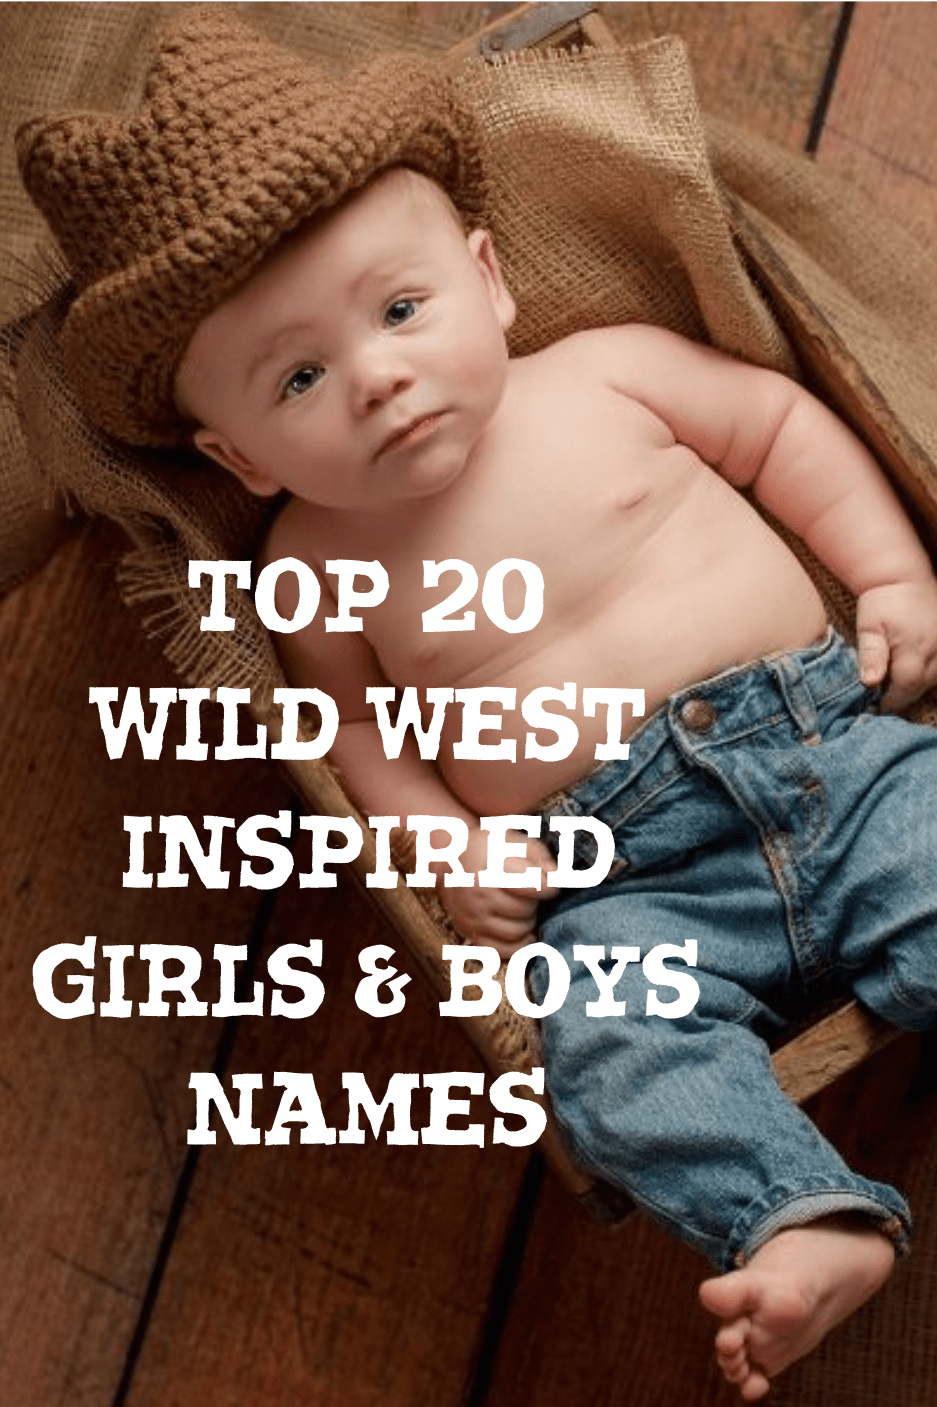 Top 20 Wild West Inspired Girls and Boys Names min